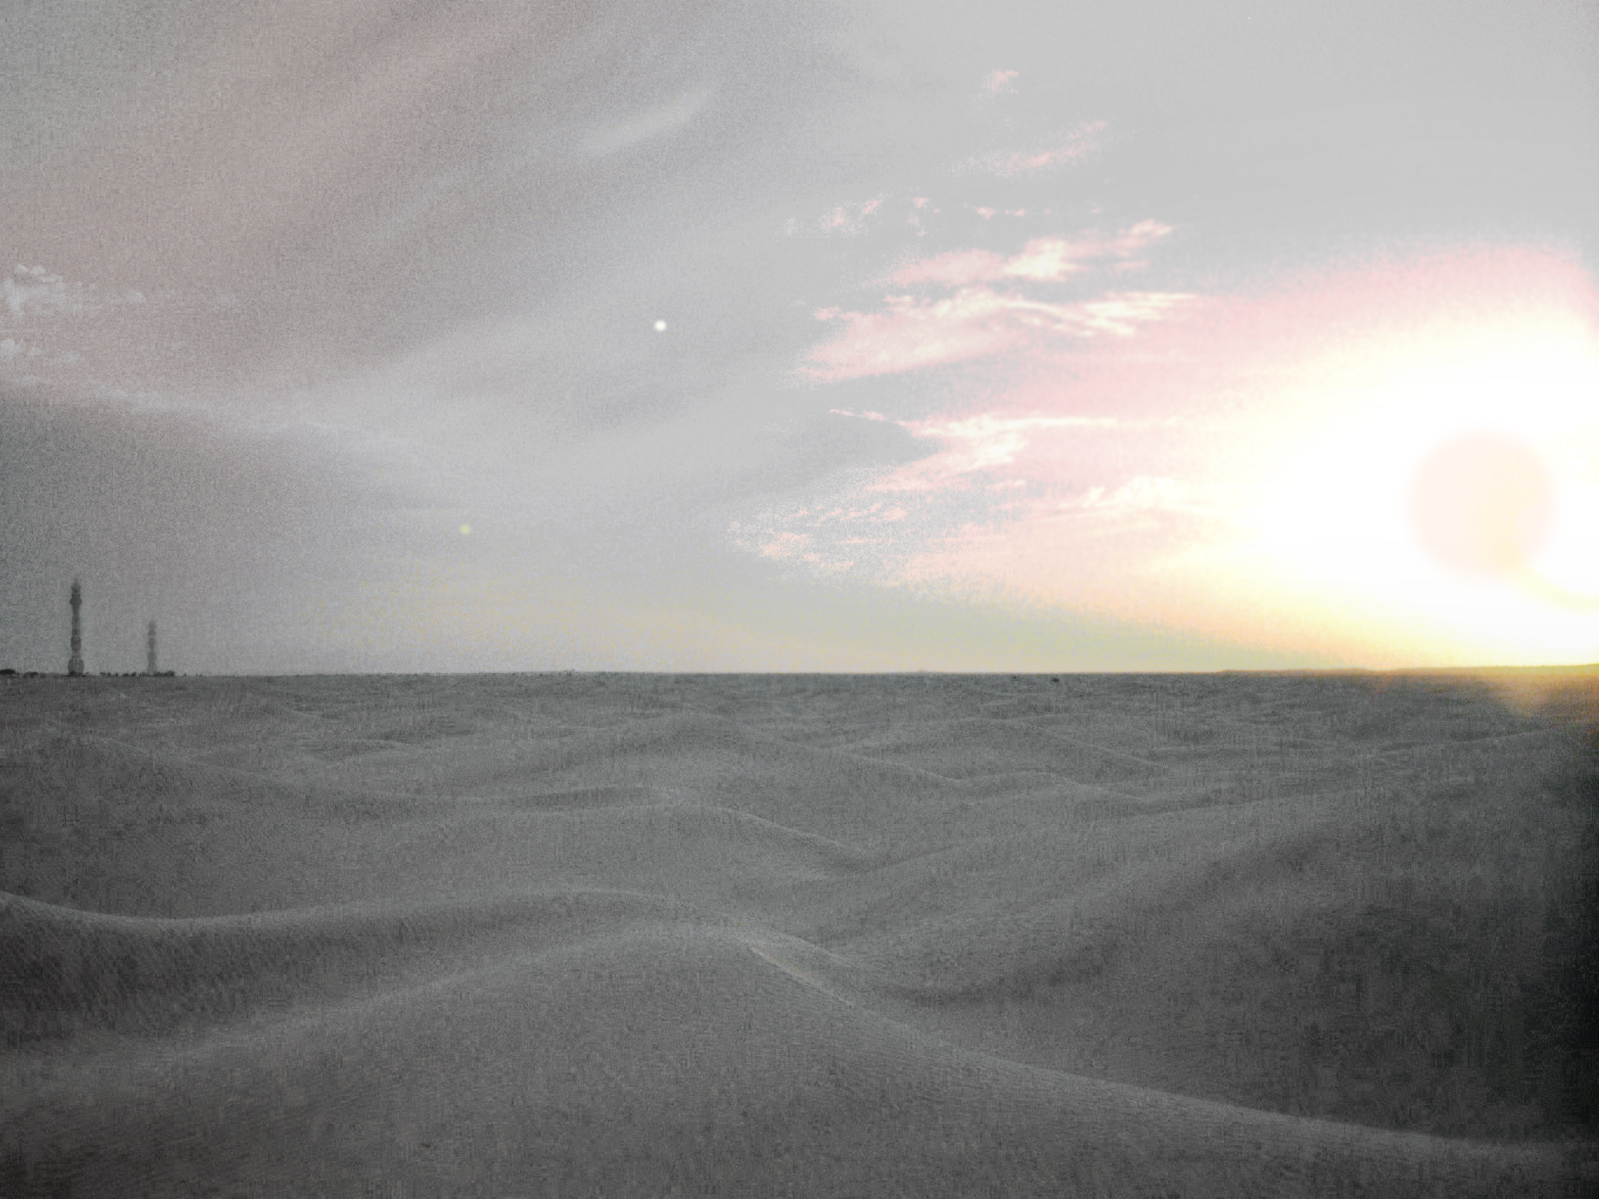 Conus surface.jpg - Sigit Ux Artor (Arcturu) rises over the snowy wastes of the Core World  Conus . On the horizon can be seen the massive towers of Coral Administrator Of Currencies complex.